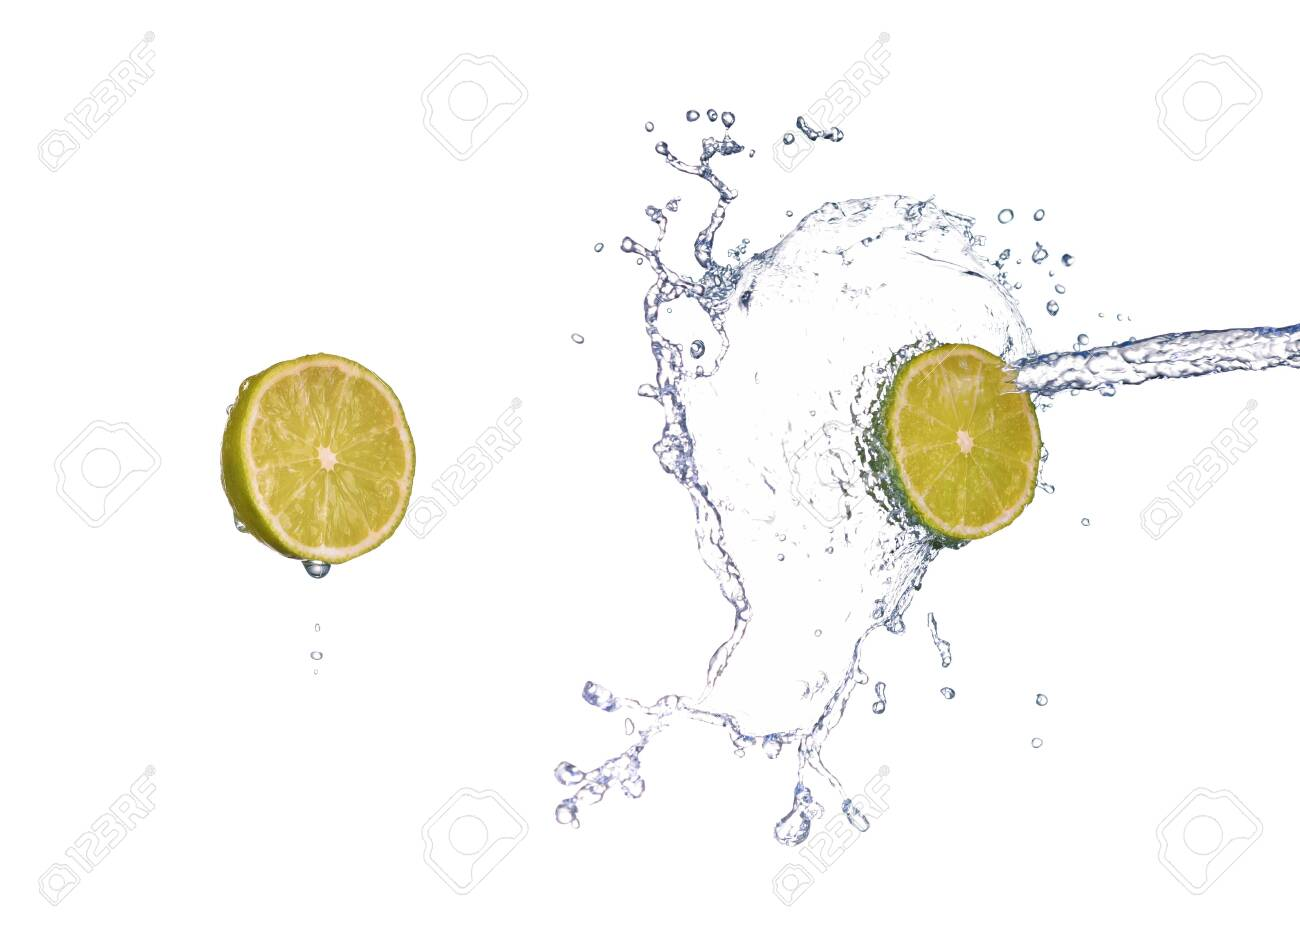 lime in spray of water. lime cucumber with splash on background - 148511124